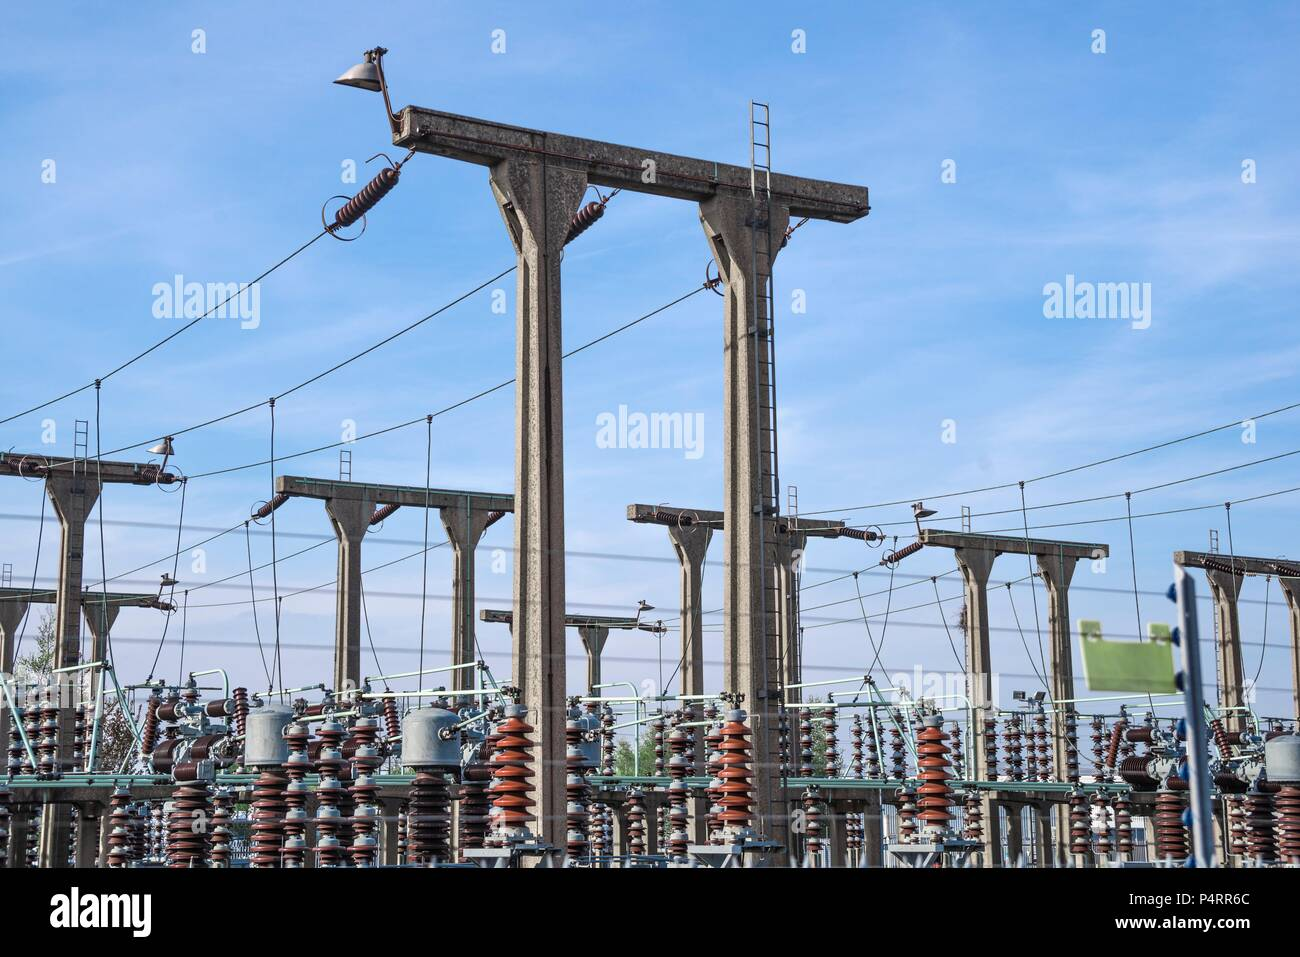 Industry Installation Stock Photos Midland Wiring Harness Electricity Generating Substation In The West Midlands Uk Image